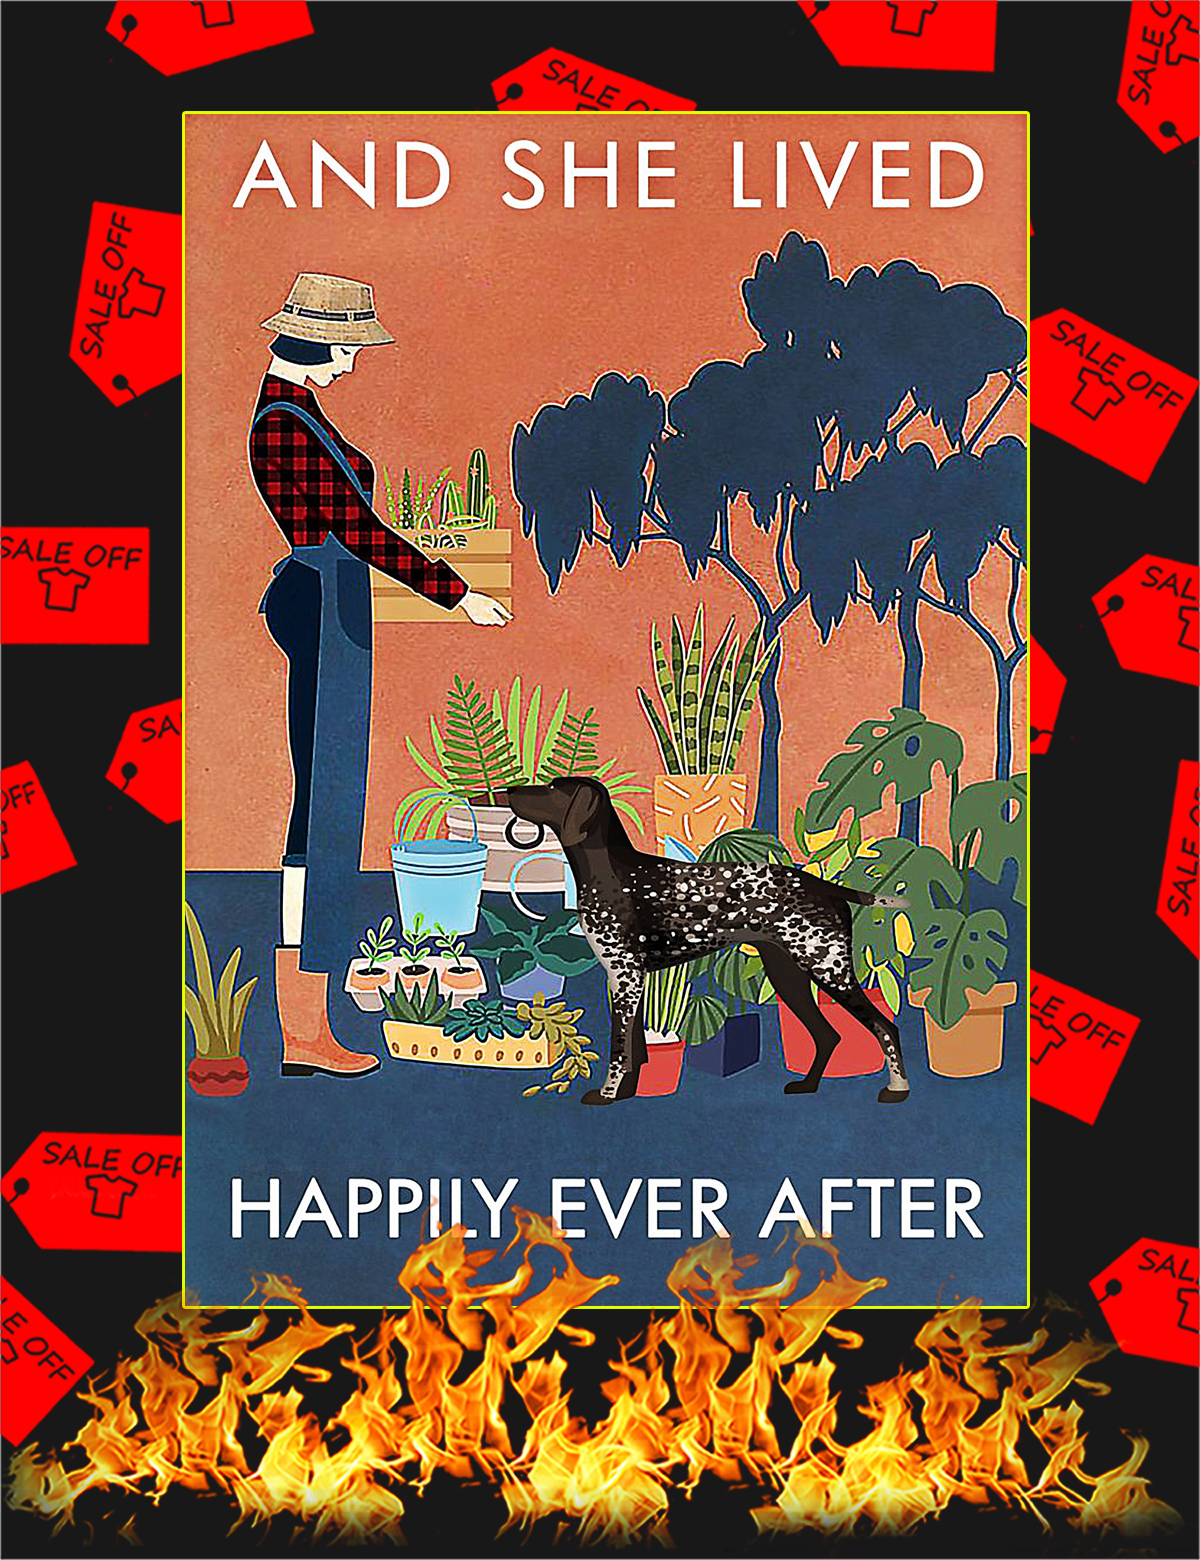 German Shorthaired Pointer And she lived happily ever after poster - A4